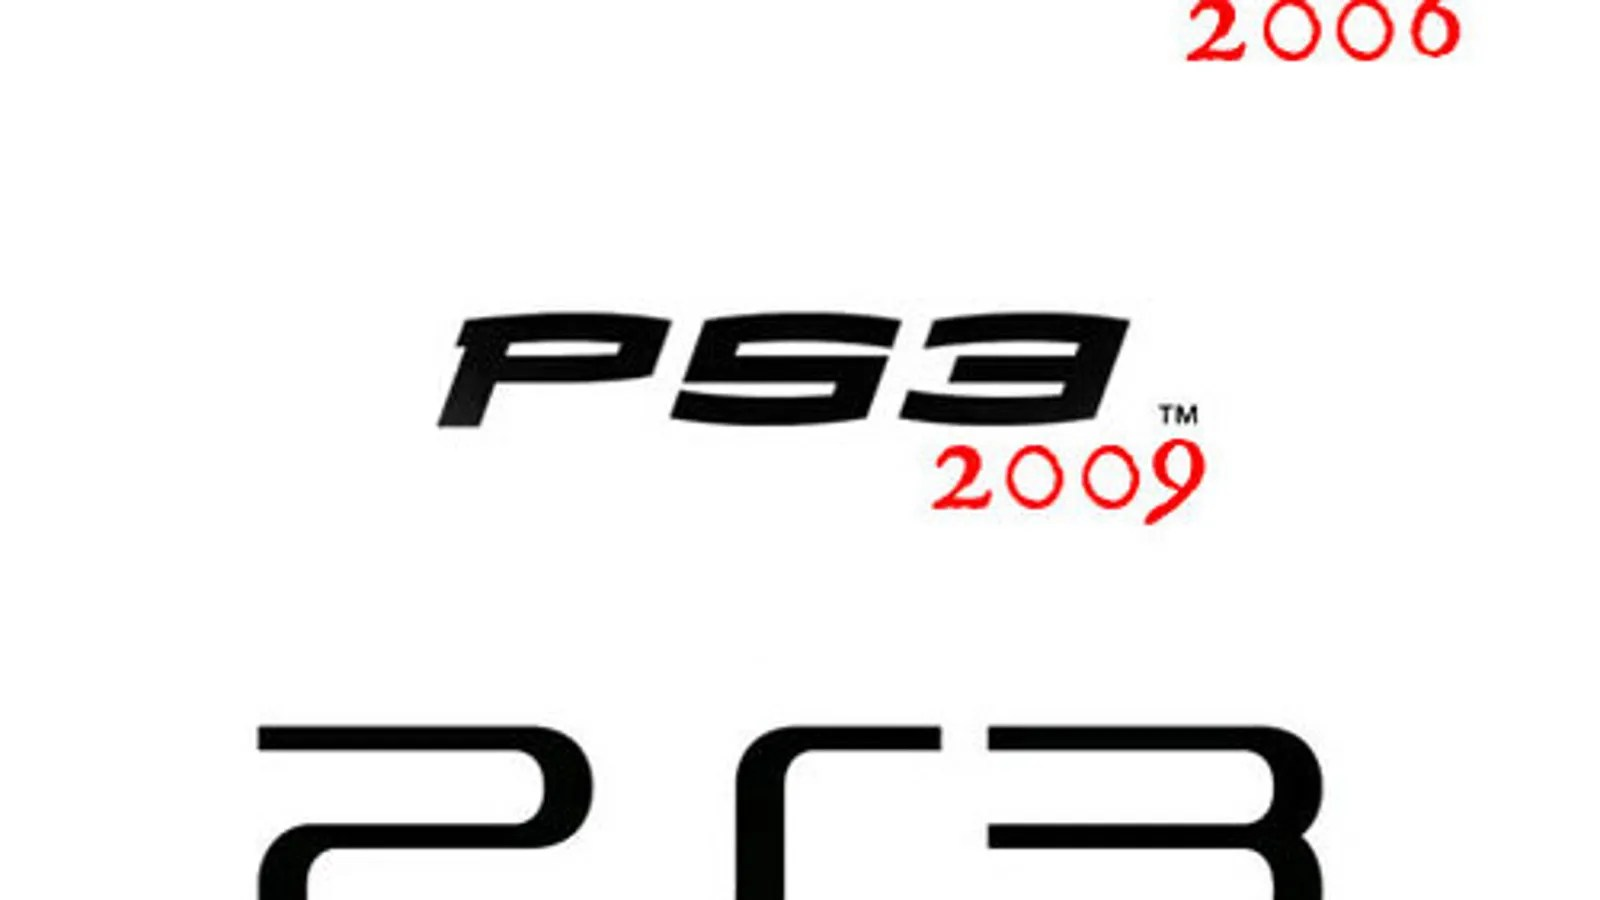 Why Sony Ditched The Spider-Man PS3 Font